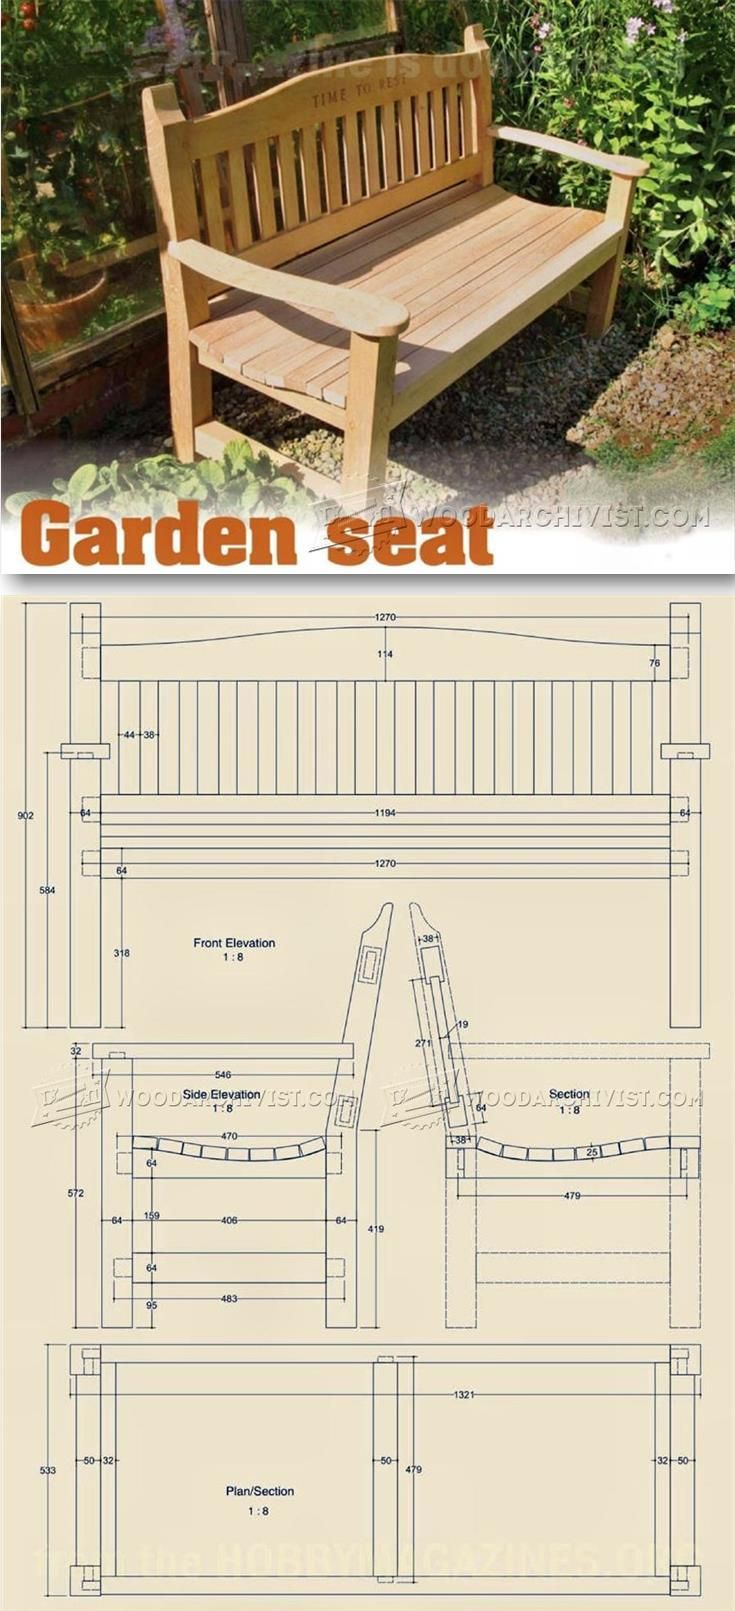 Modern Furniture Woodworking Plans 169 best outdoor furniture plans images on pinterest | outdoor